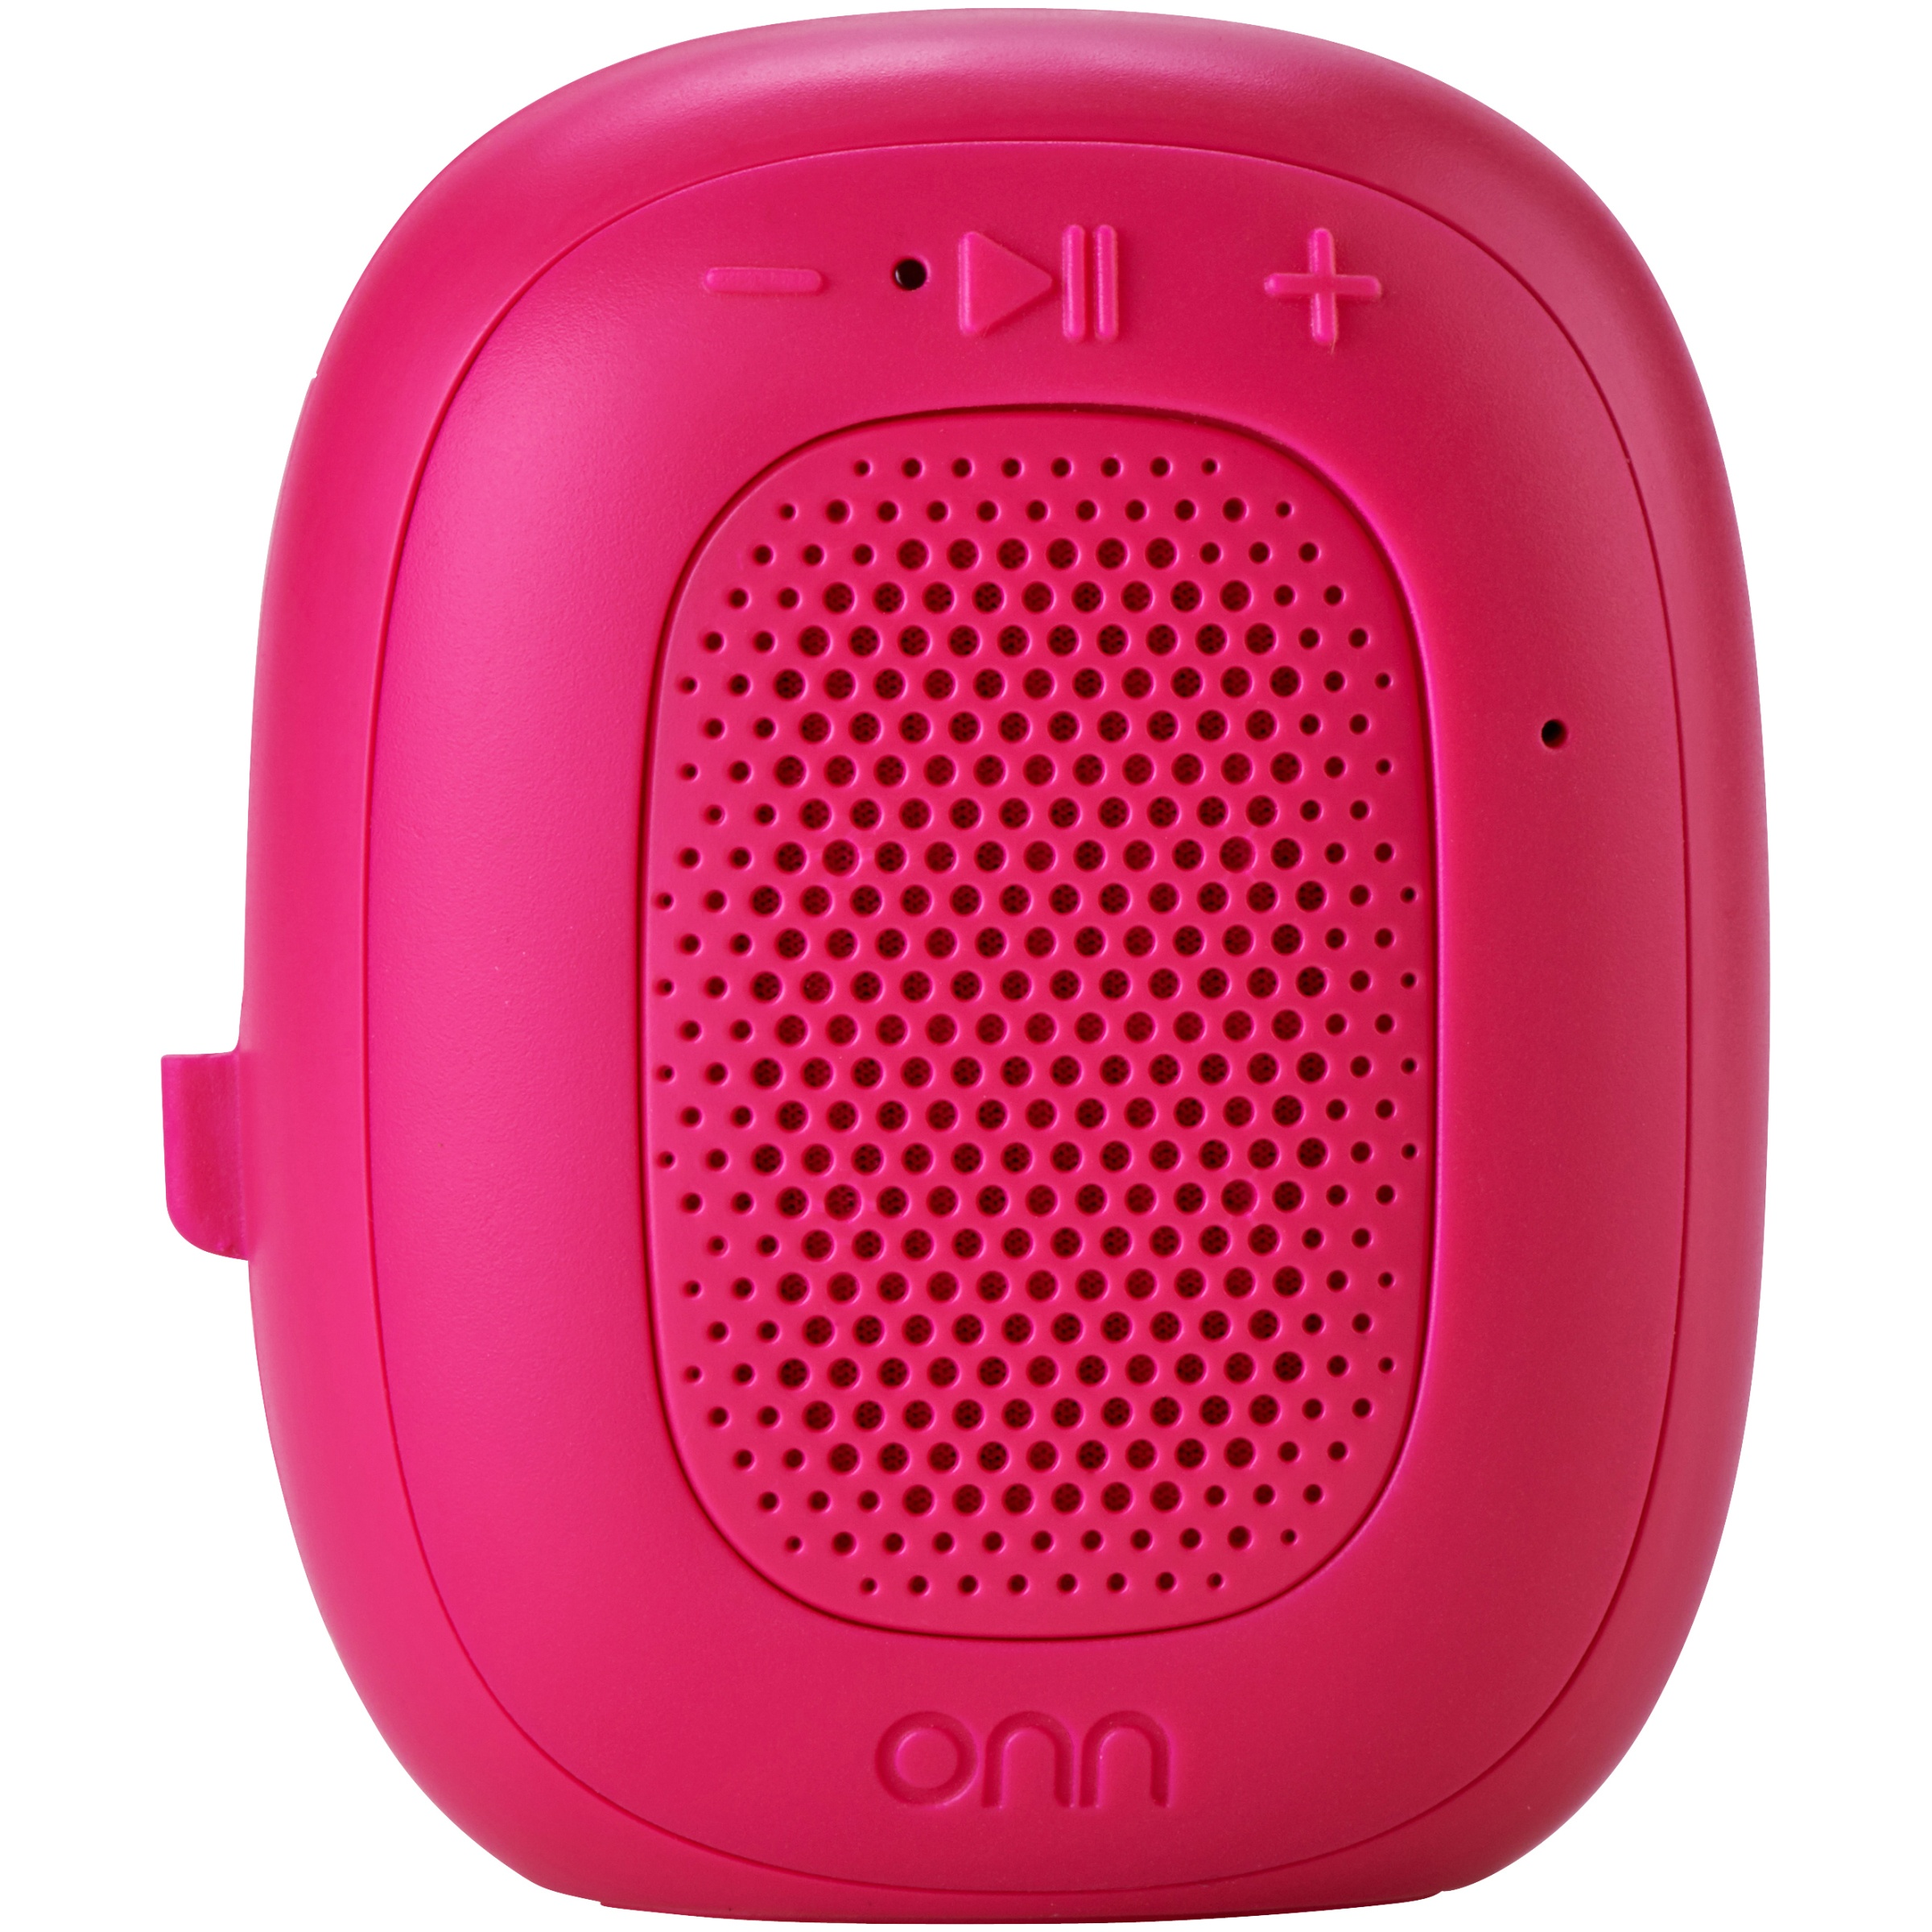 ONN Mini Bluetooth Speaker, Rich Black, Built-In Speakerphone & Hanging Strip